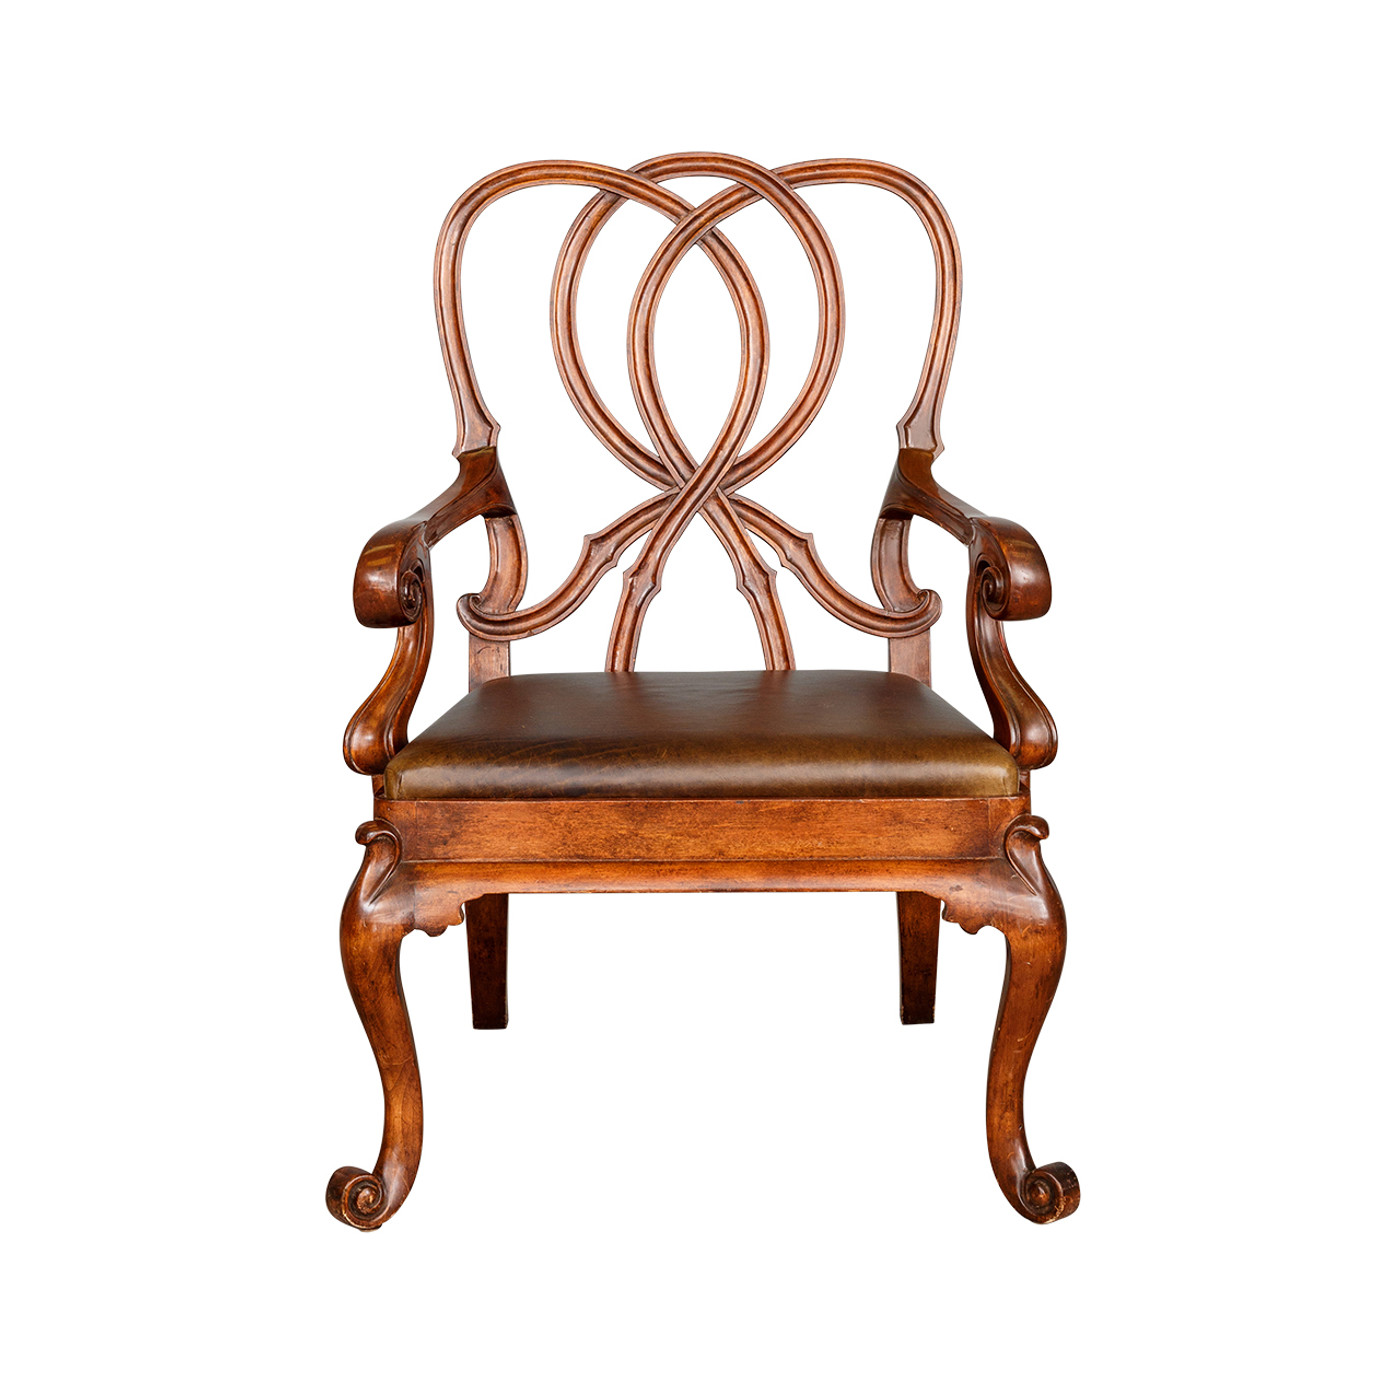 Georgina Ribbon Chair by Rose Tarlow-Melrose House